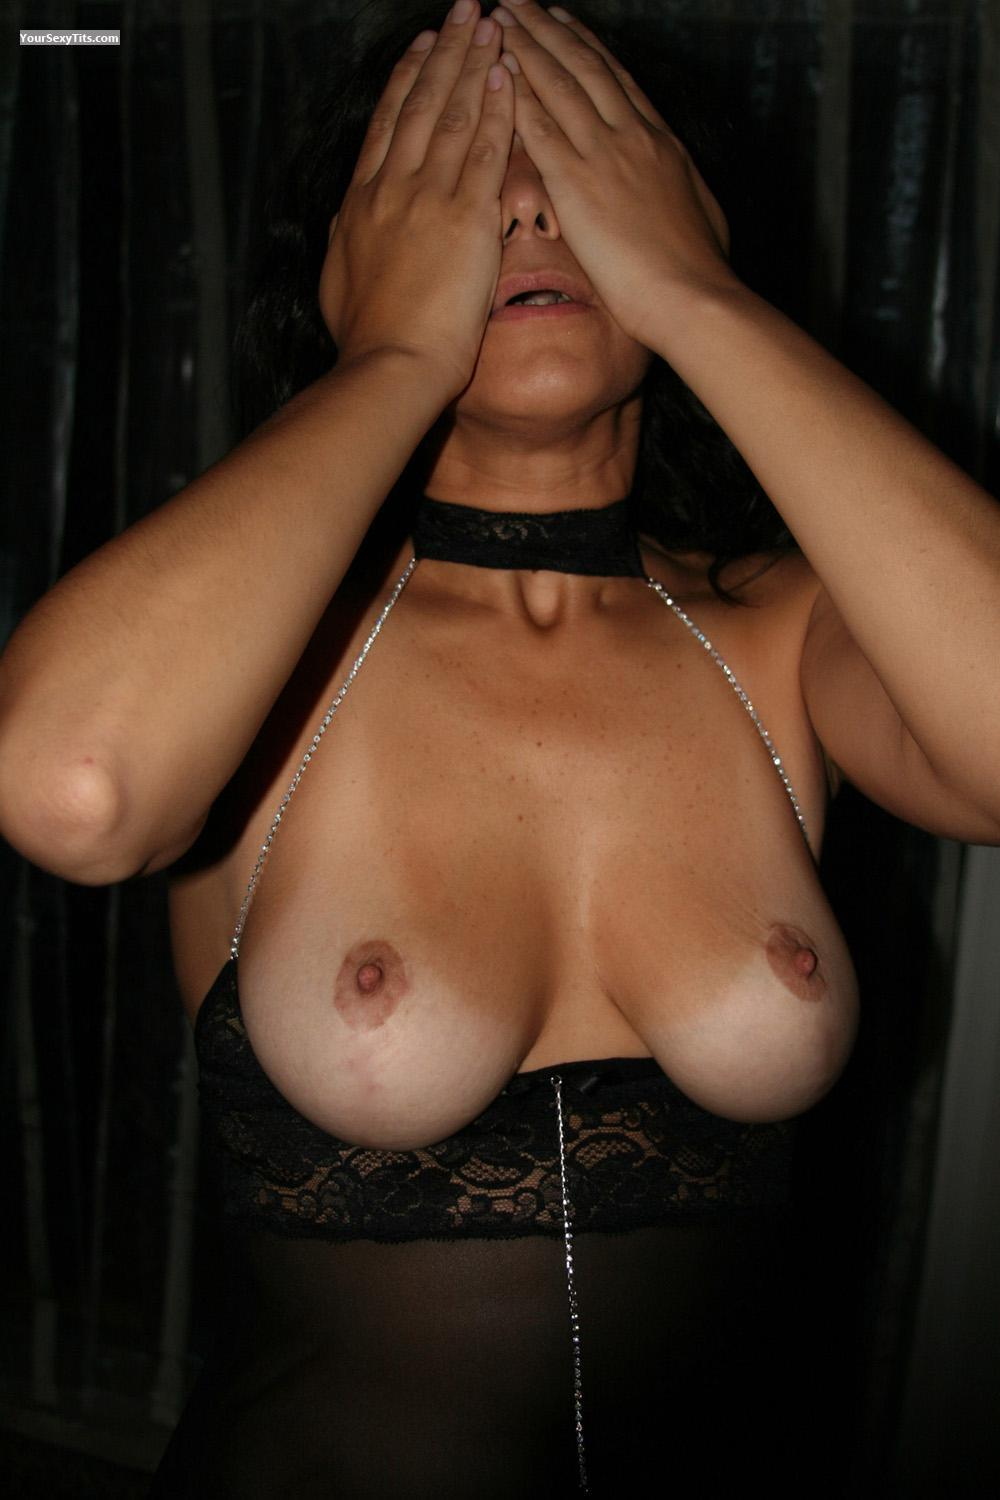 Tit Flash: Big Tits - Shy Wife from United States